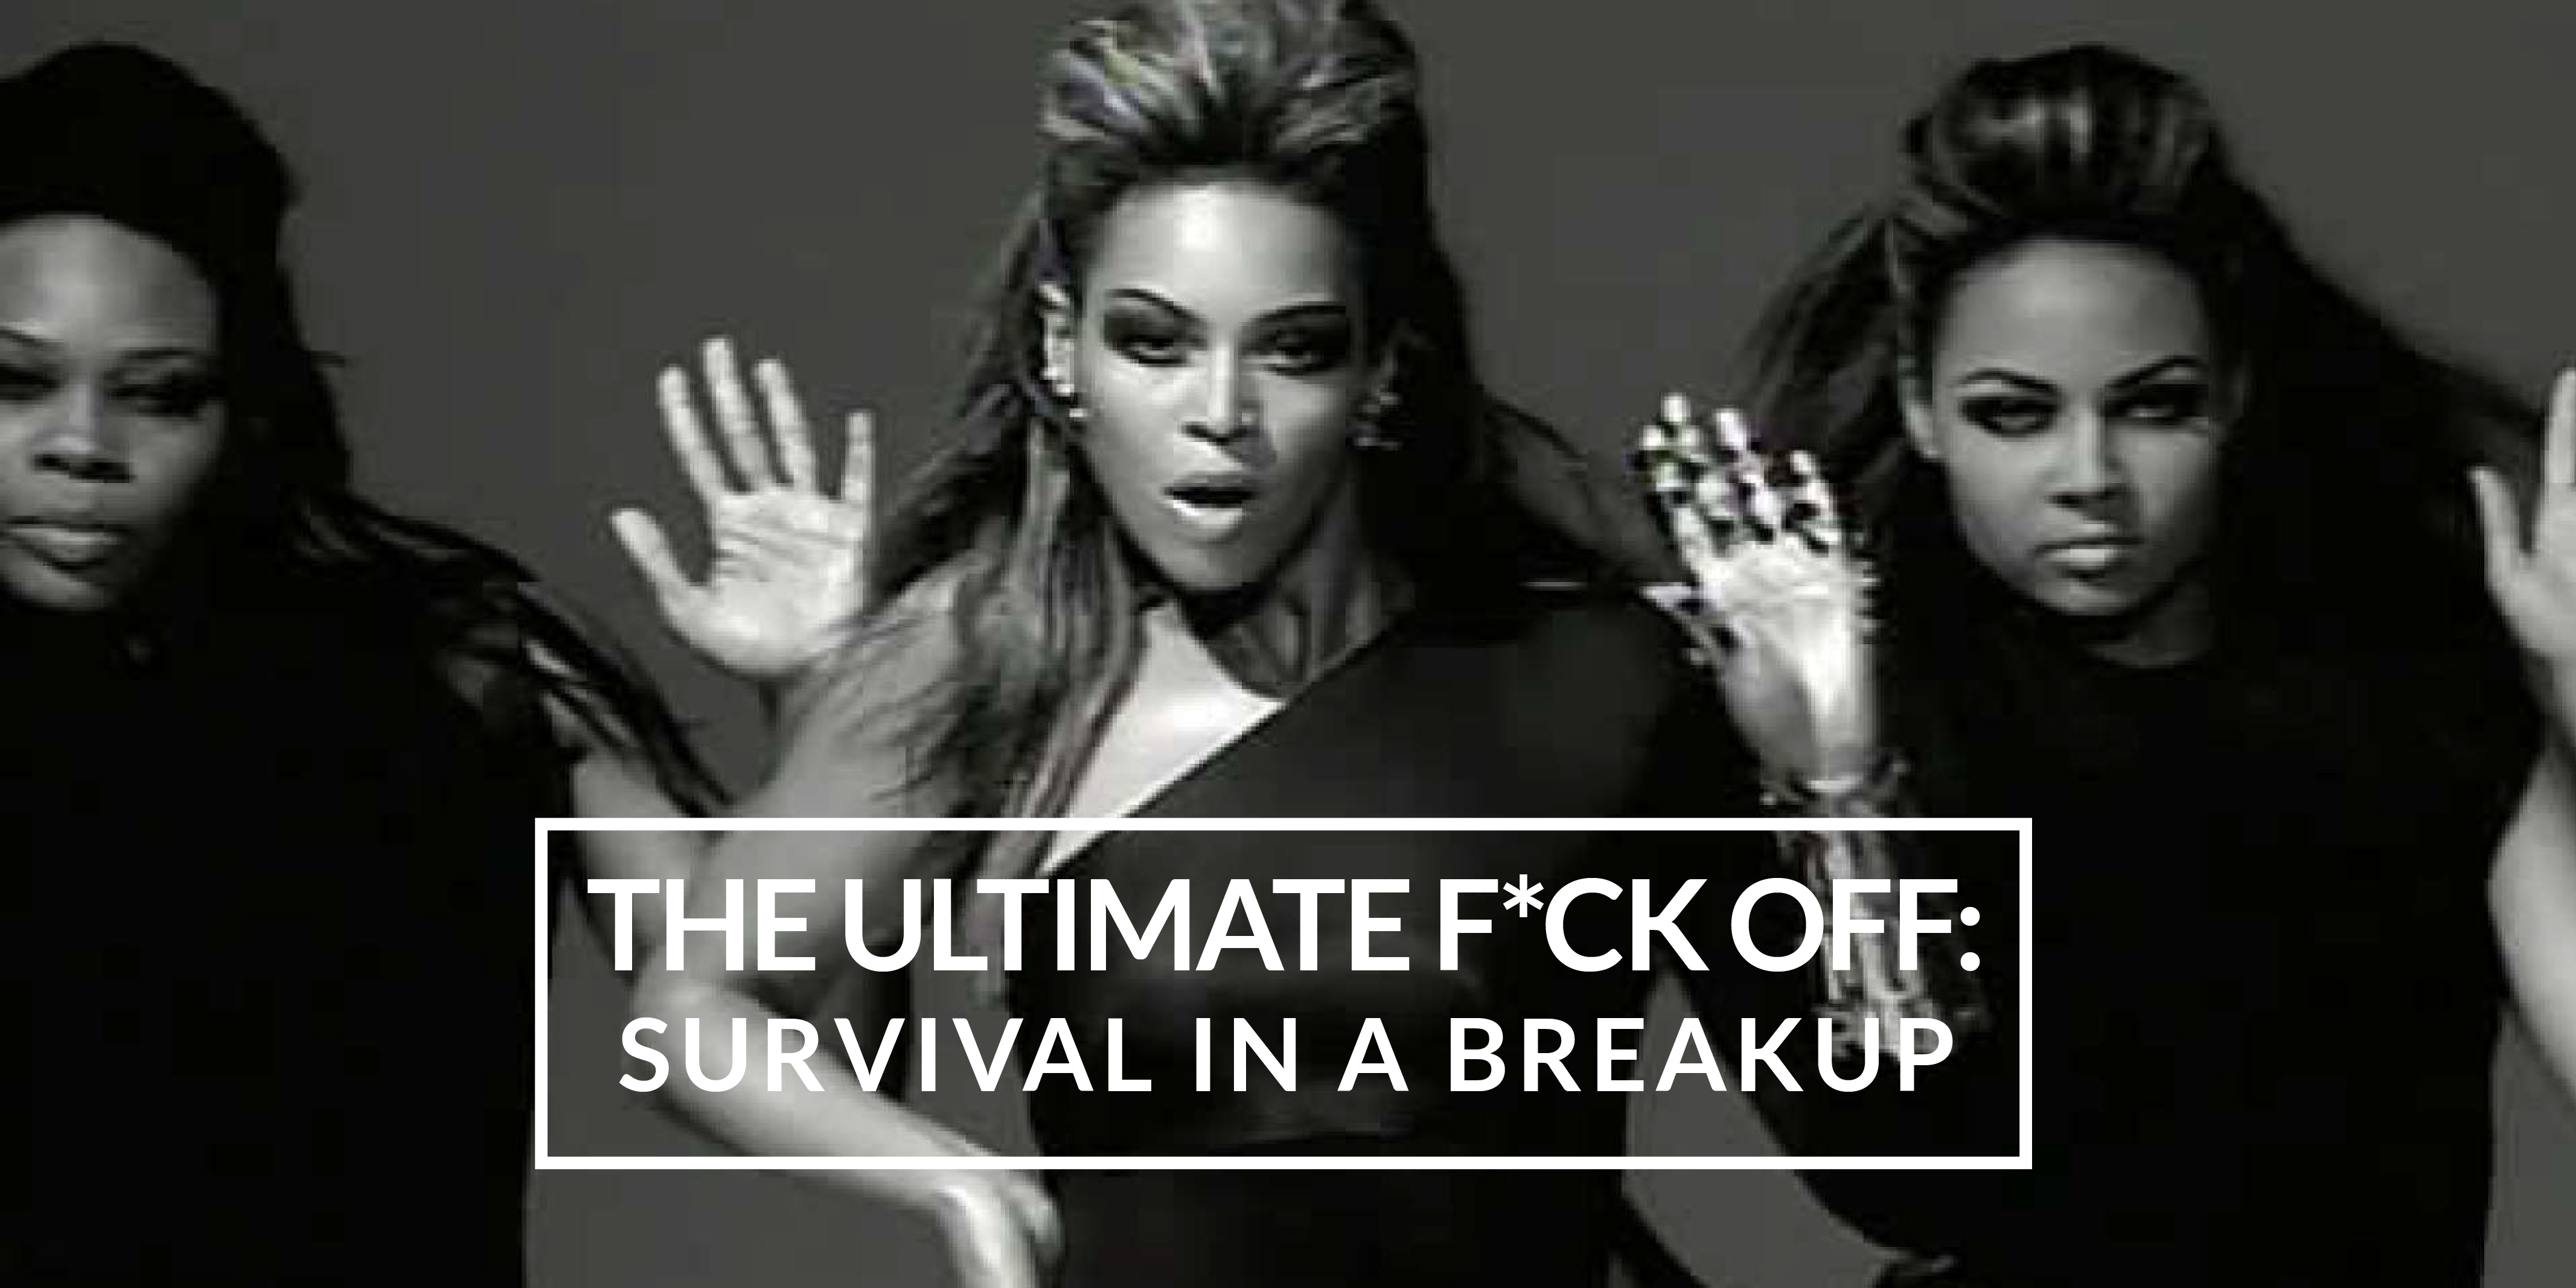 THE ULTIMATE F*CK OFF: Survival in a Breakup